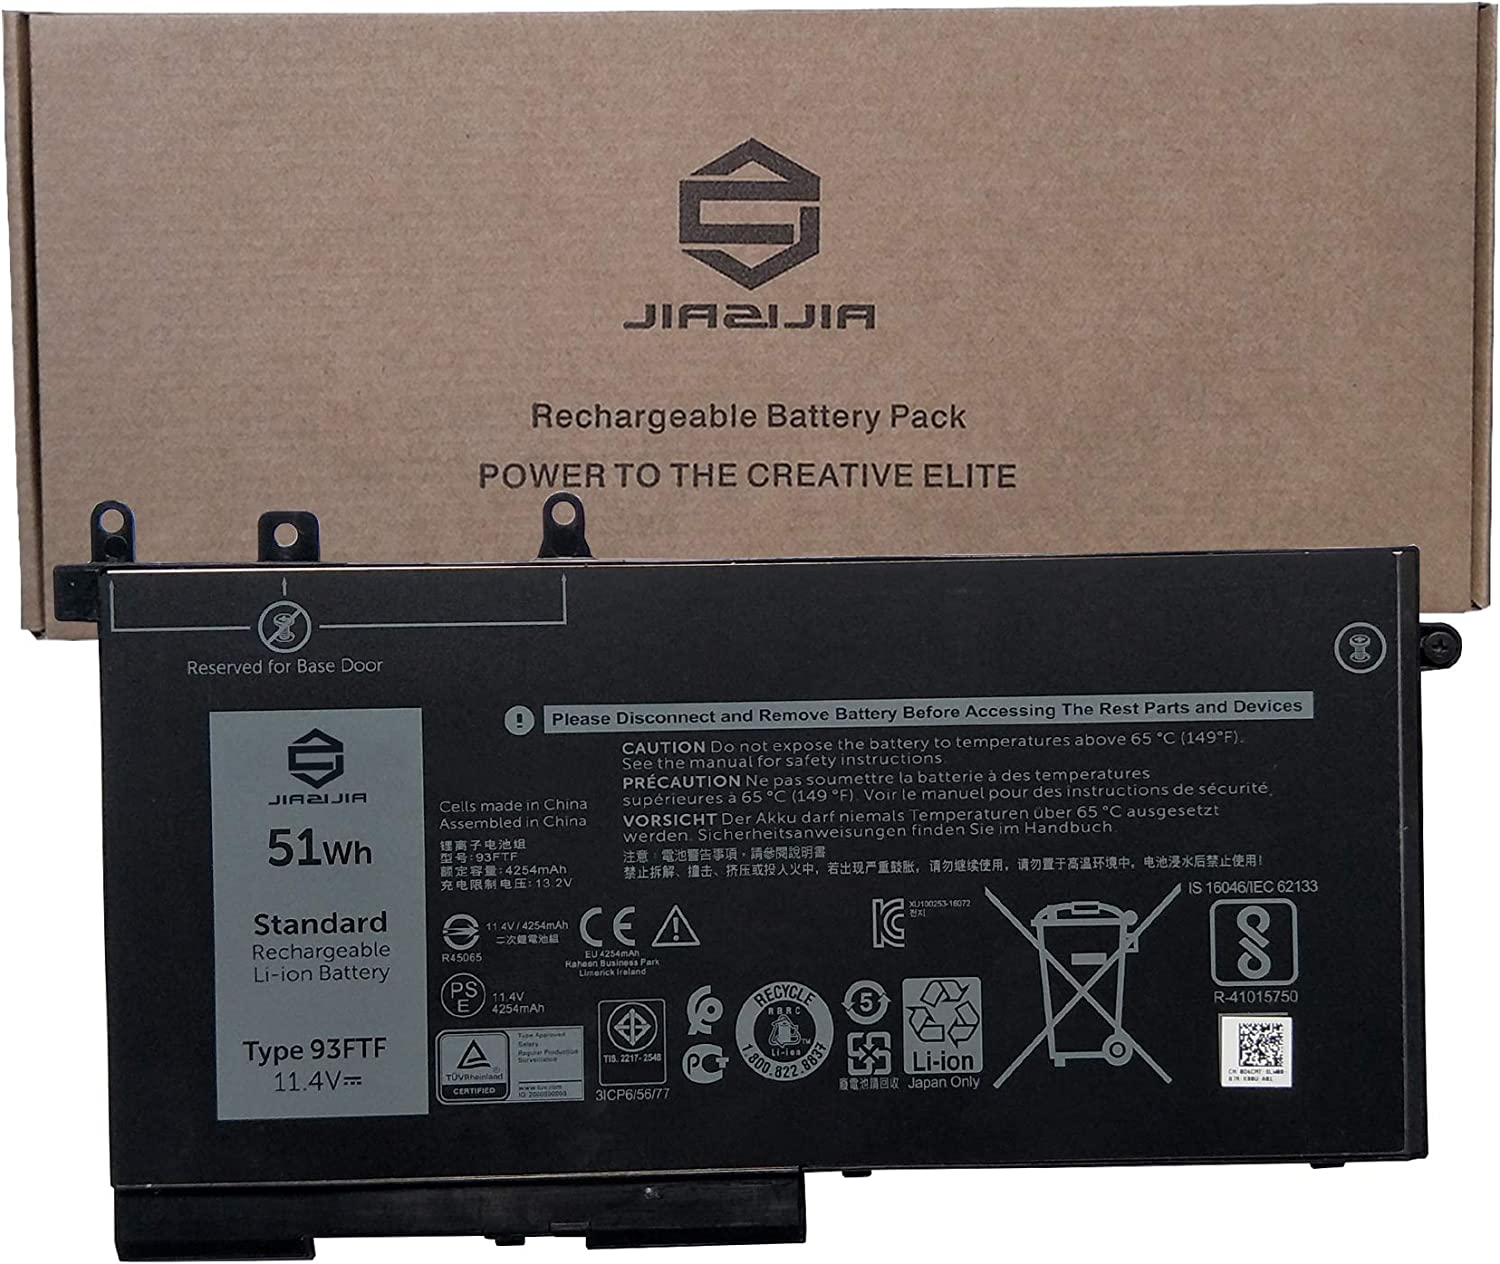 JIAZIJIA 93FTF Laptop Battery Replacement for Dell Latitude 5280 5288 5480 5580 5490 5590 5491 5591 5495 5488 Precision 3520 3530 Series GJKNX 3DDDG D4CMT 083XPC 83XPC 4YFVG DJWGP 0DJWGP 11.4V 51Wh